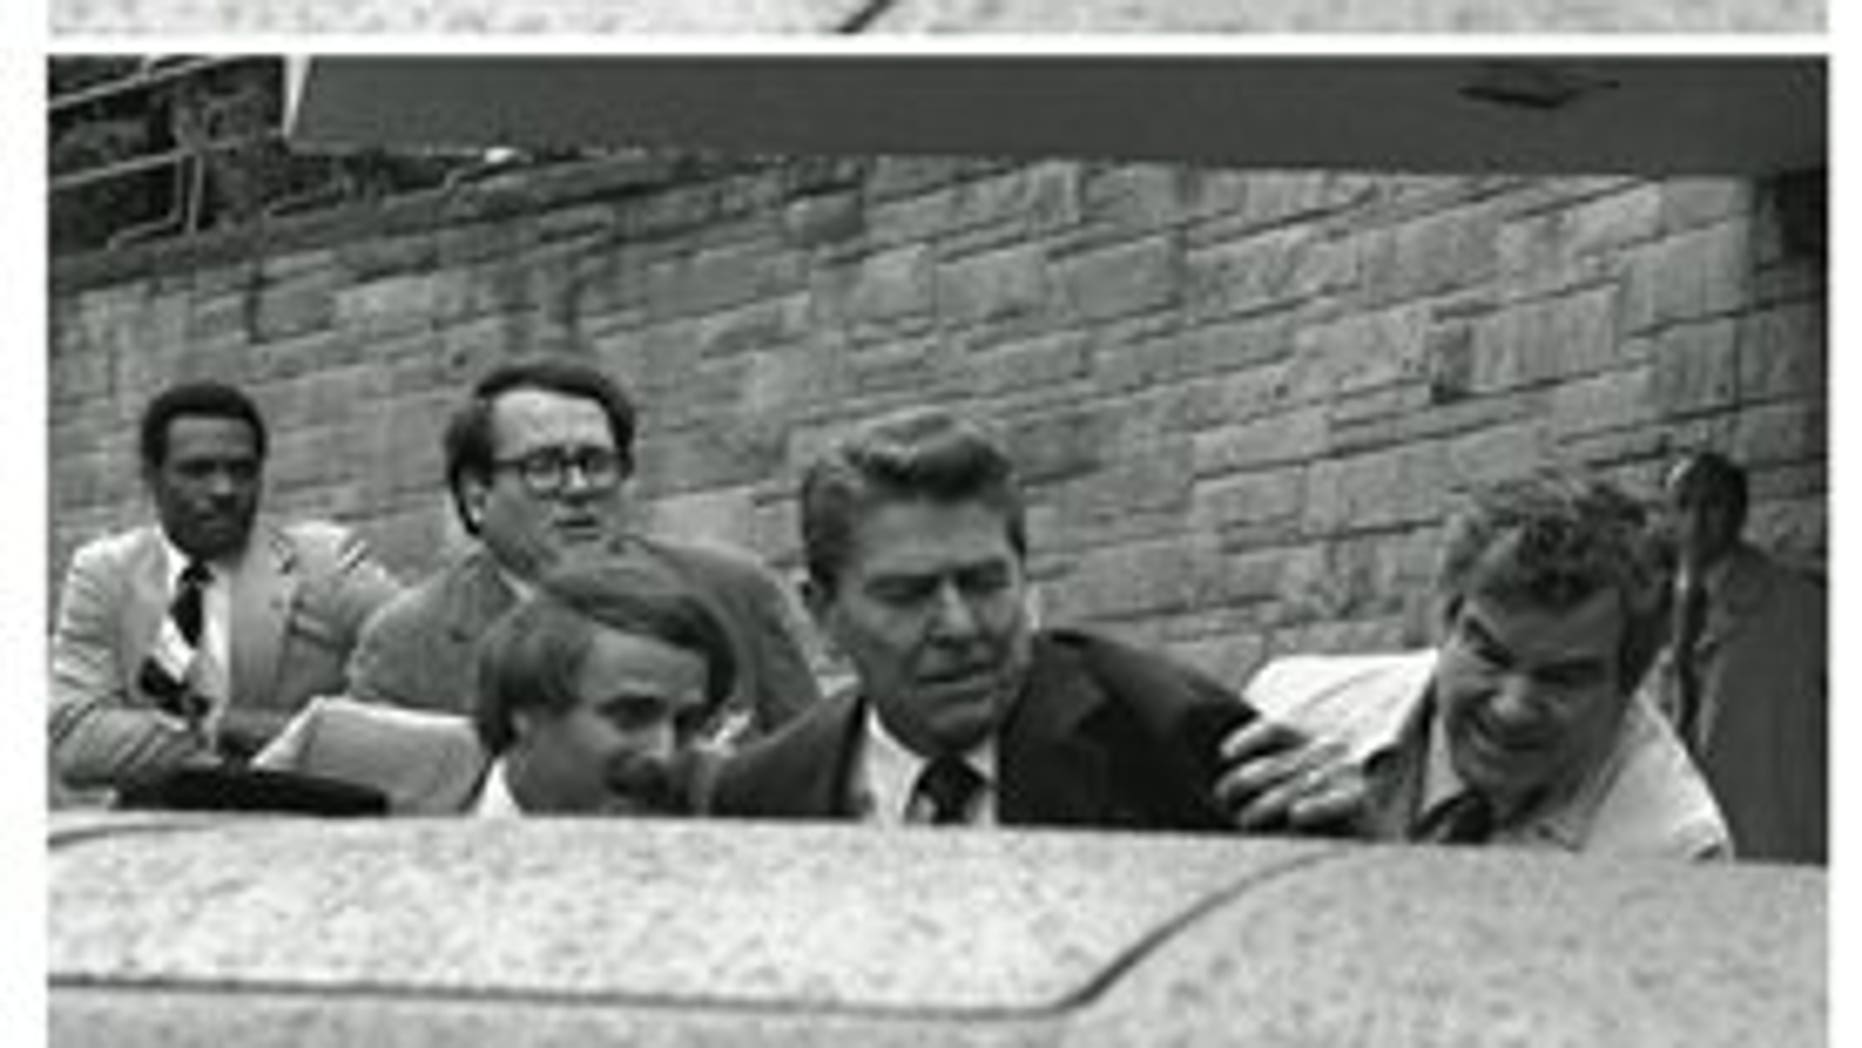 In this March 30, 1981, black-and-white three picture combo file photo, President Reagan waves, then looks up before being shoved into Presidential limousine by Secret Service agents after being shot outside a hotel in Washington. (AP Photo/Ron Edmonds, File)